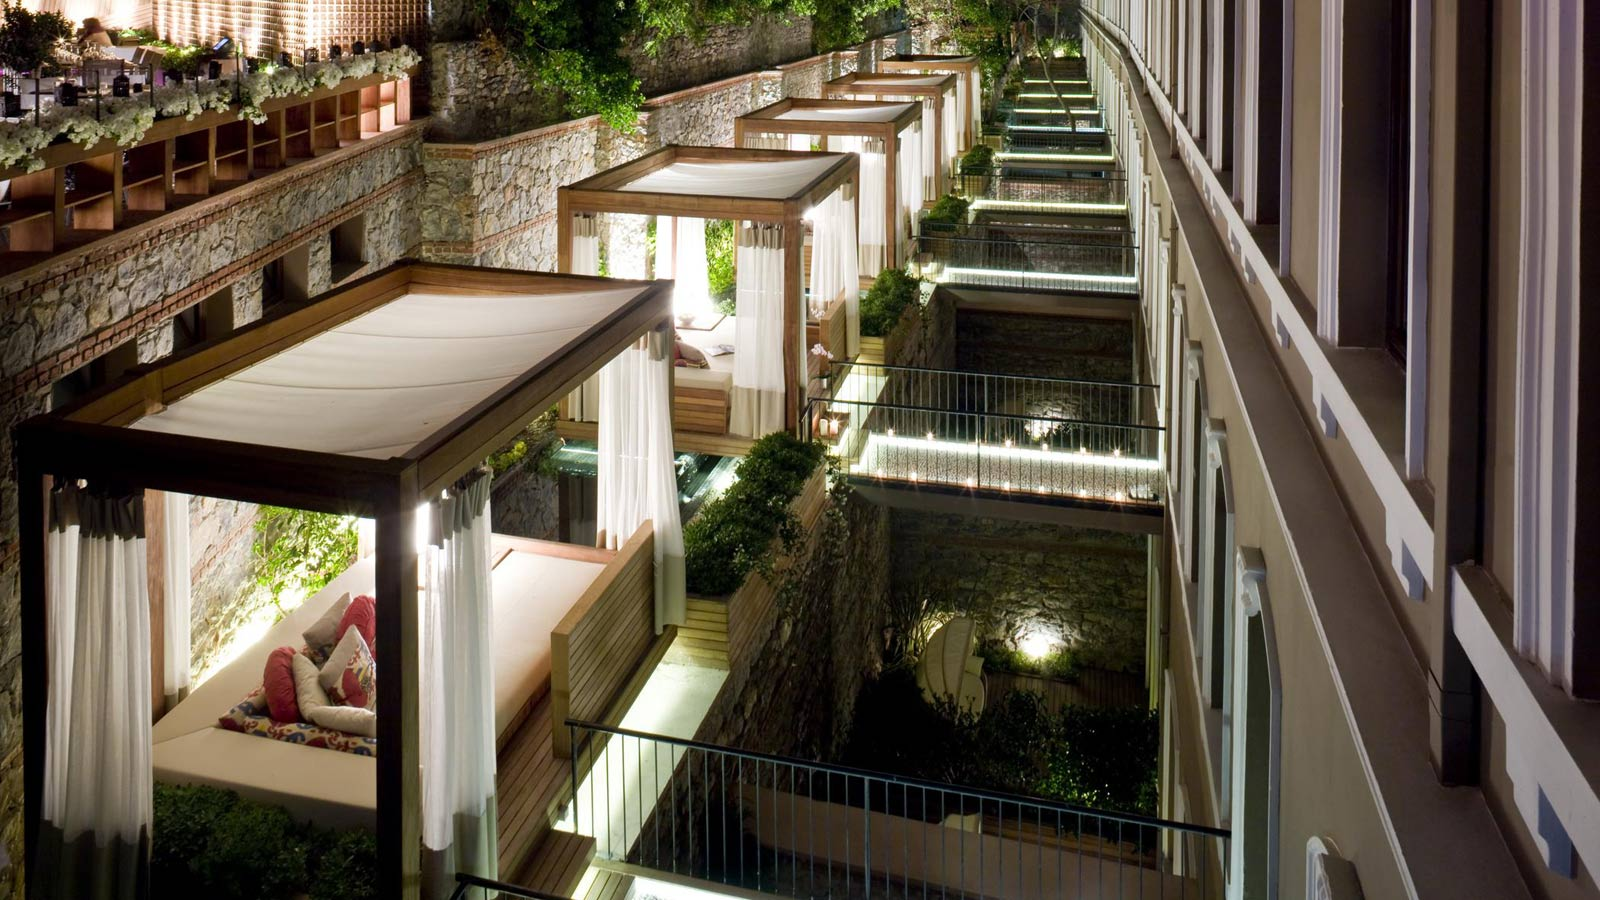 Cabana_Marvelous_Rooms W Hotel Istanbul  -  Istanbul, Turkey Istanbul Turkey  Turkey Istanbul Hotel Cool